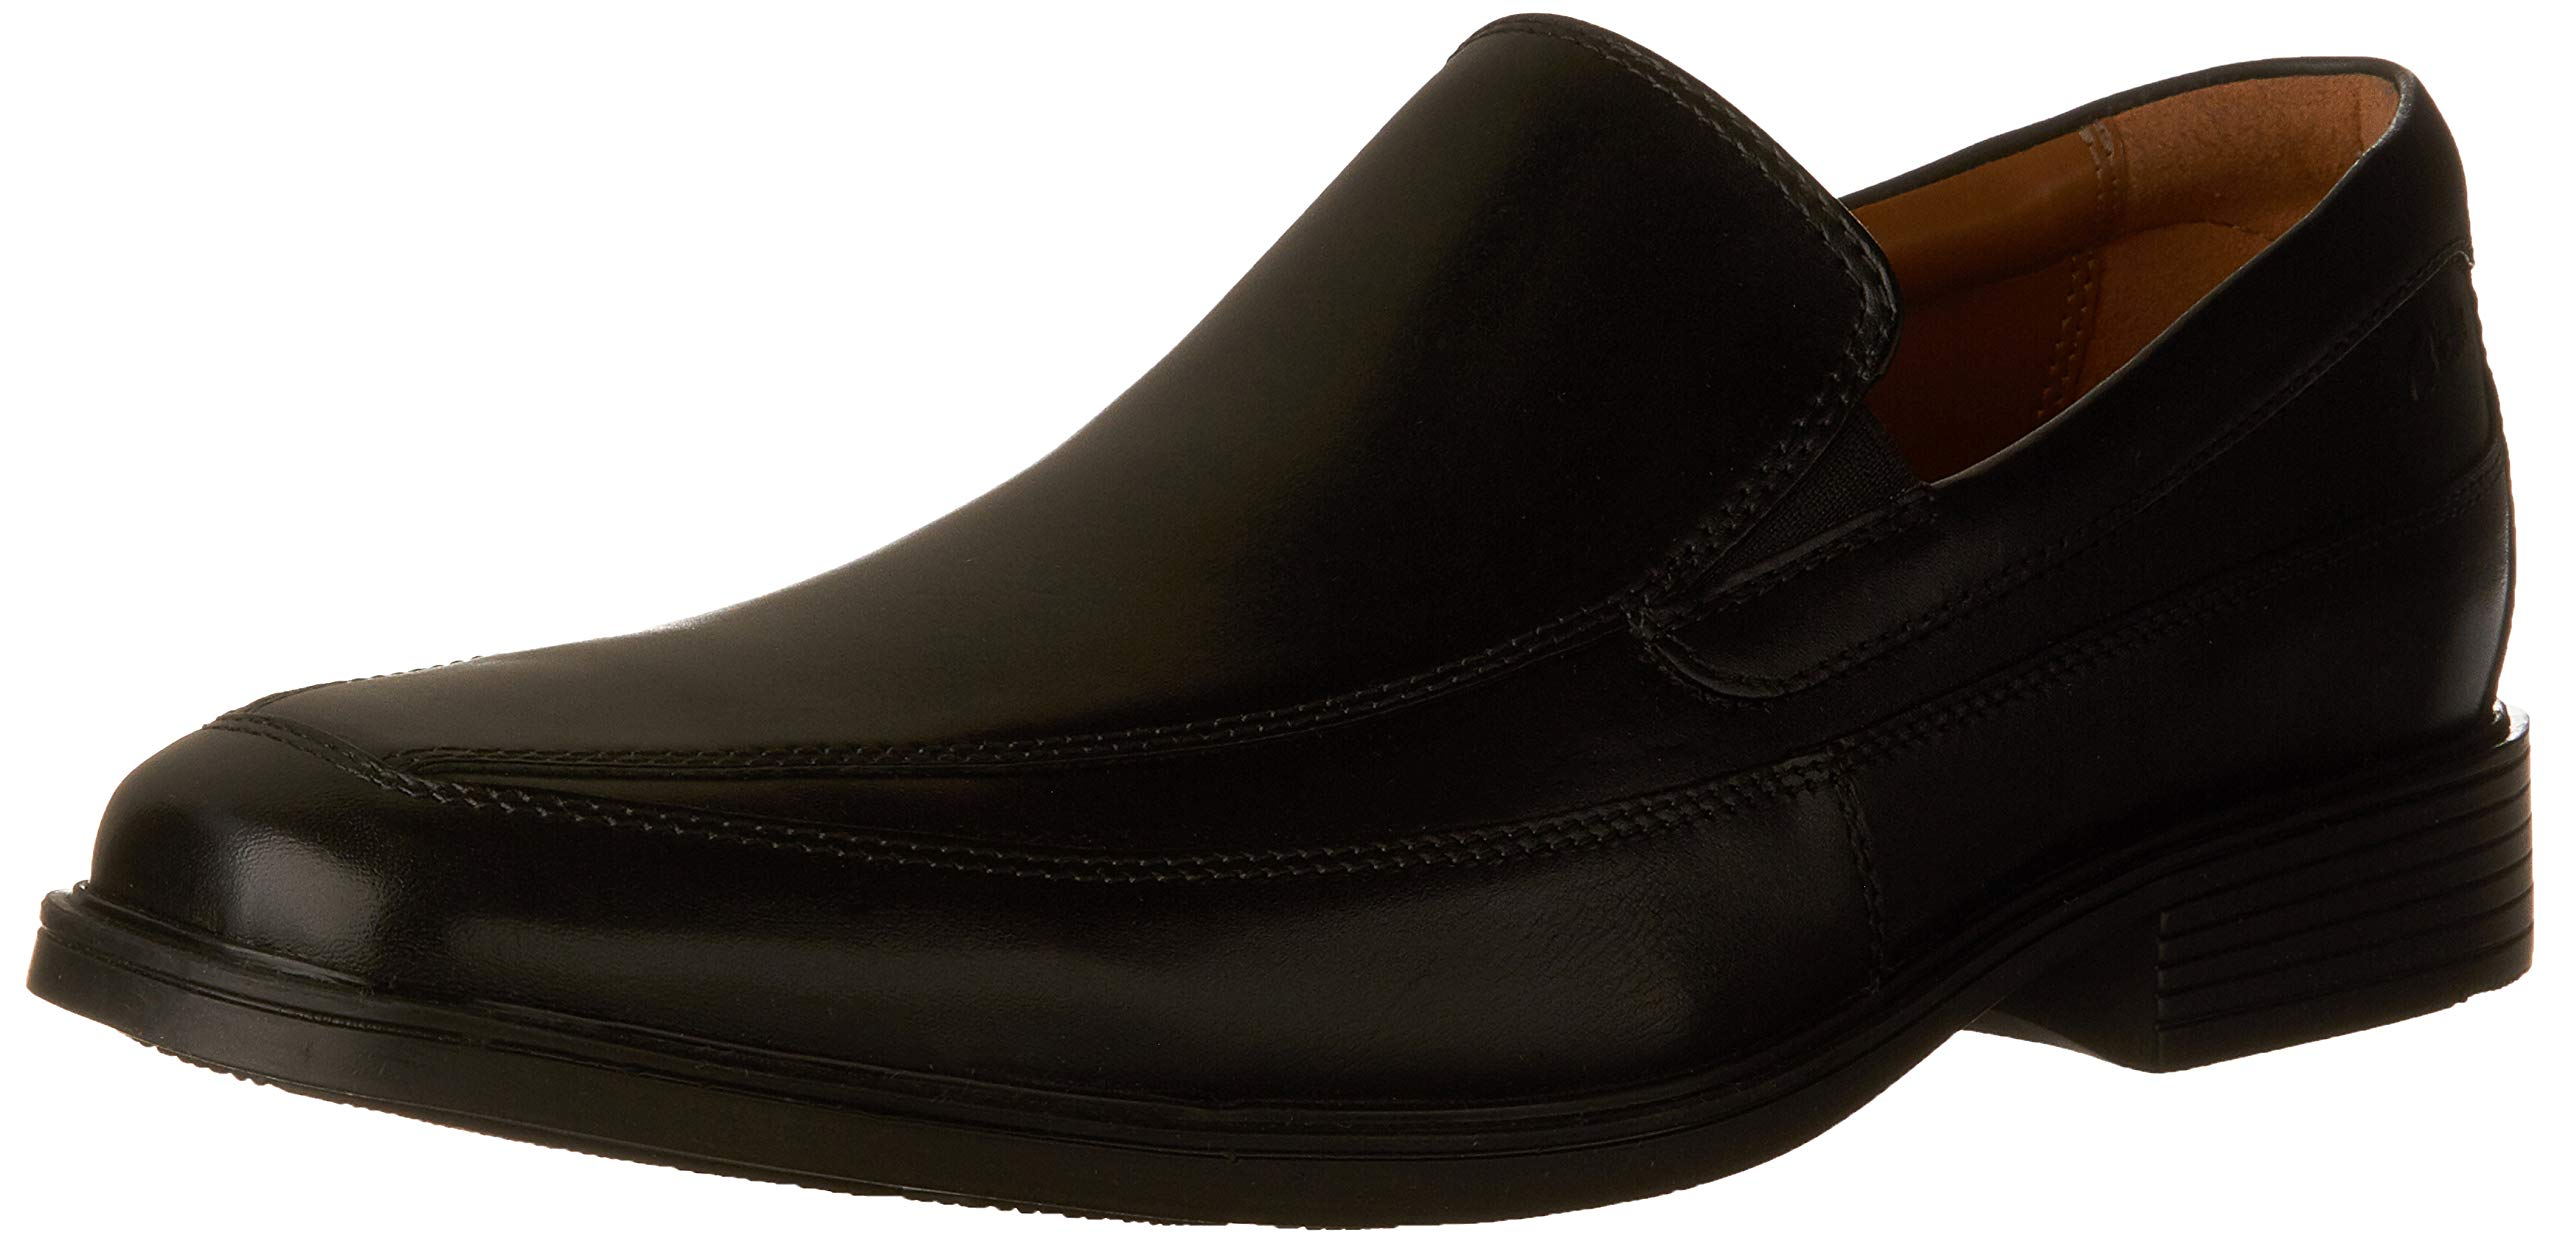 CLARKS Men/'s Tilden Free Slip-On Loafer